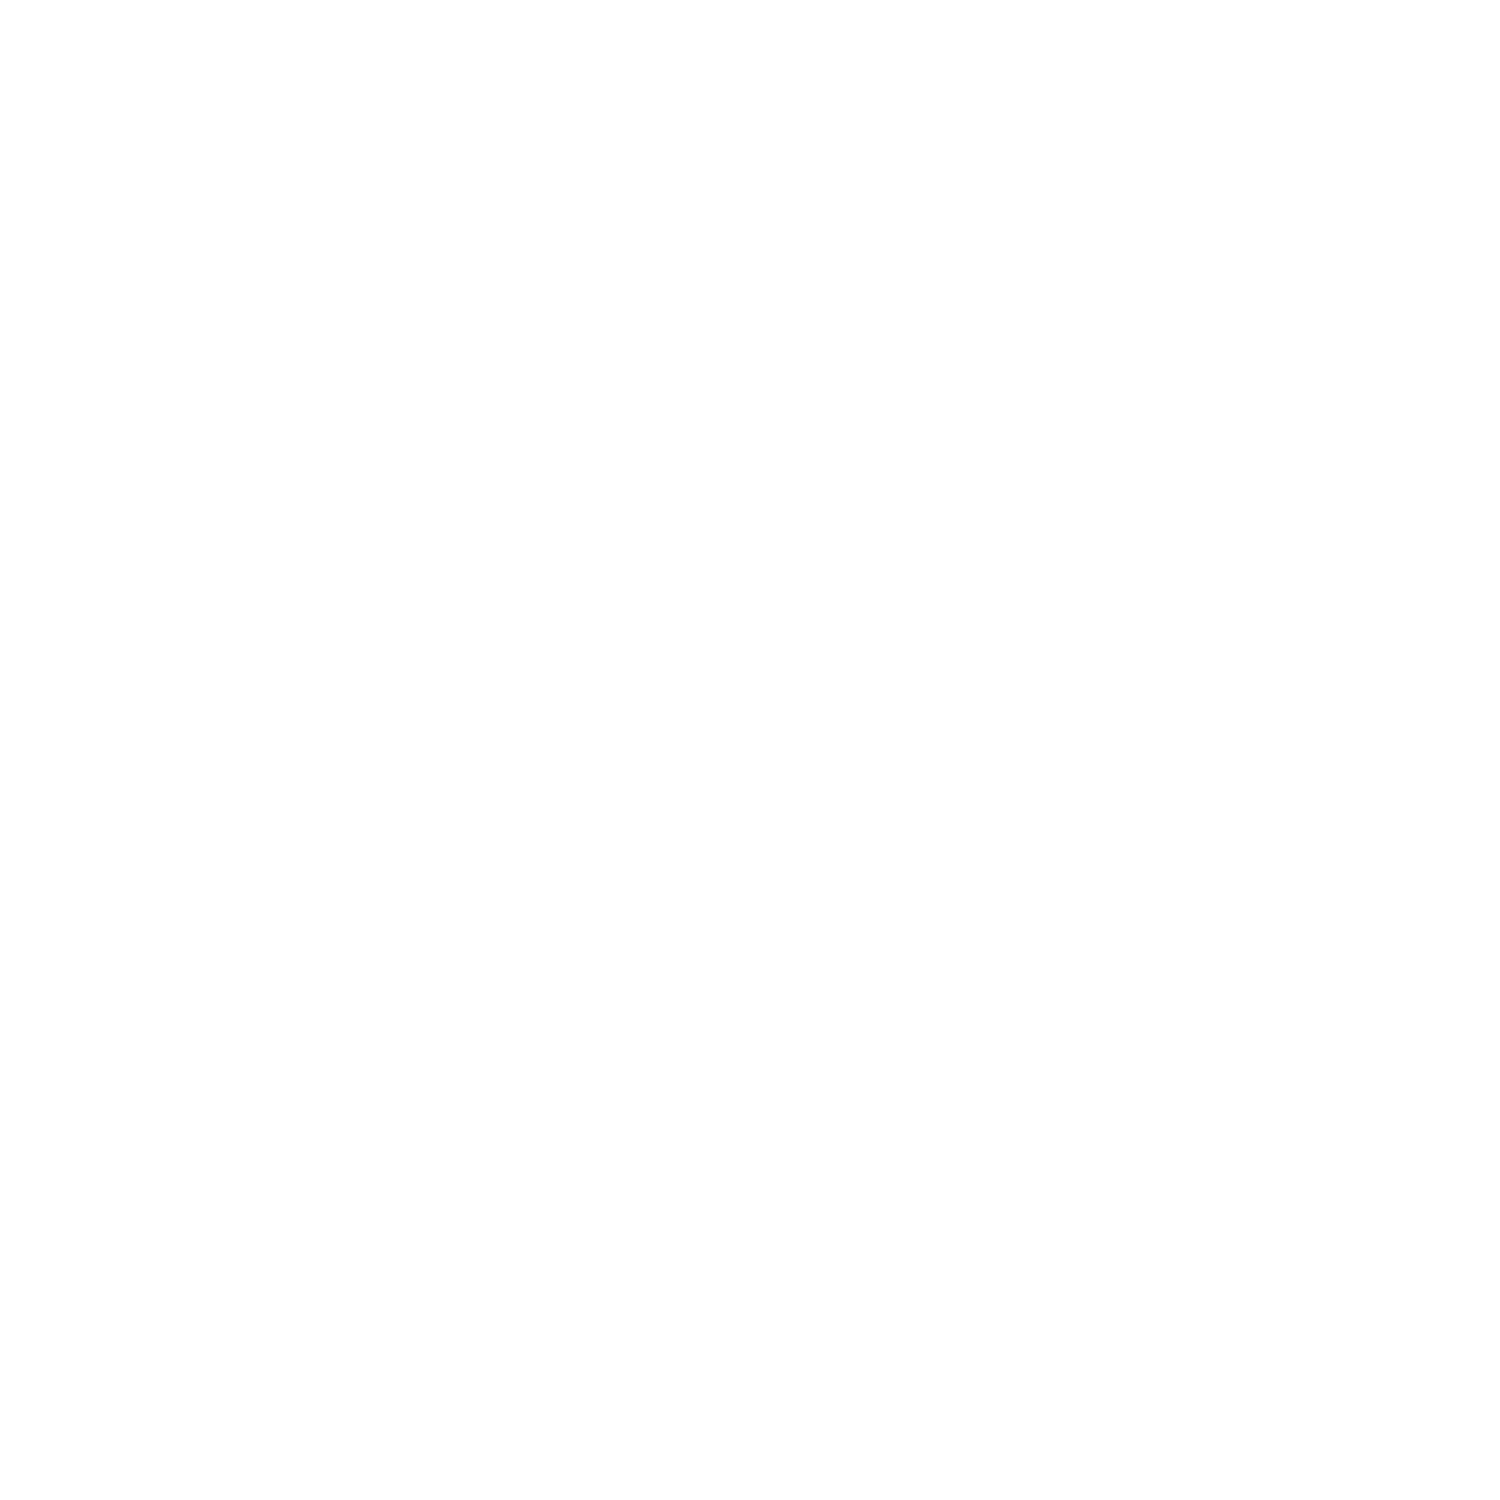 aura spa+beauty studio